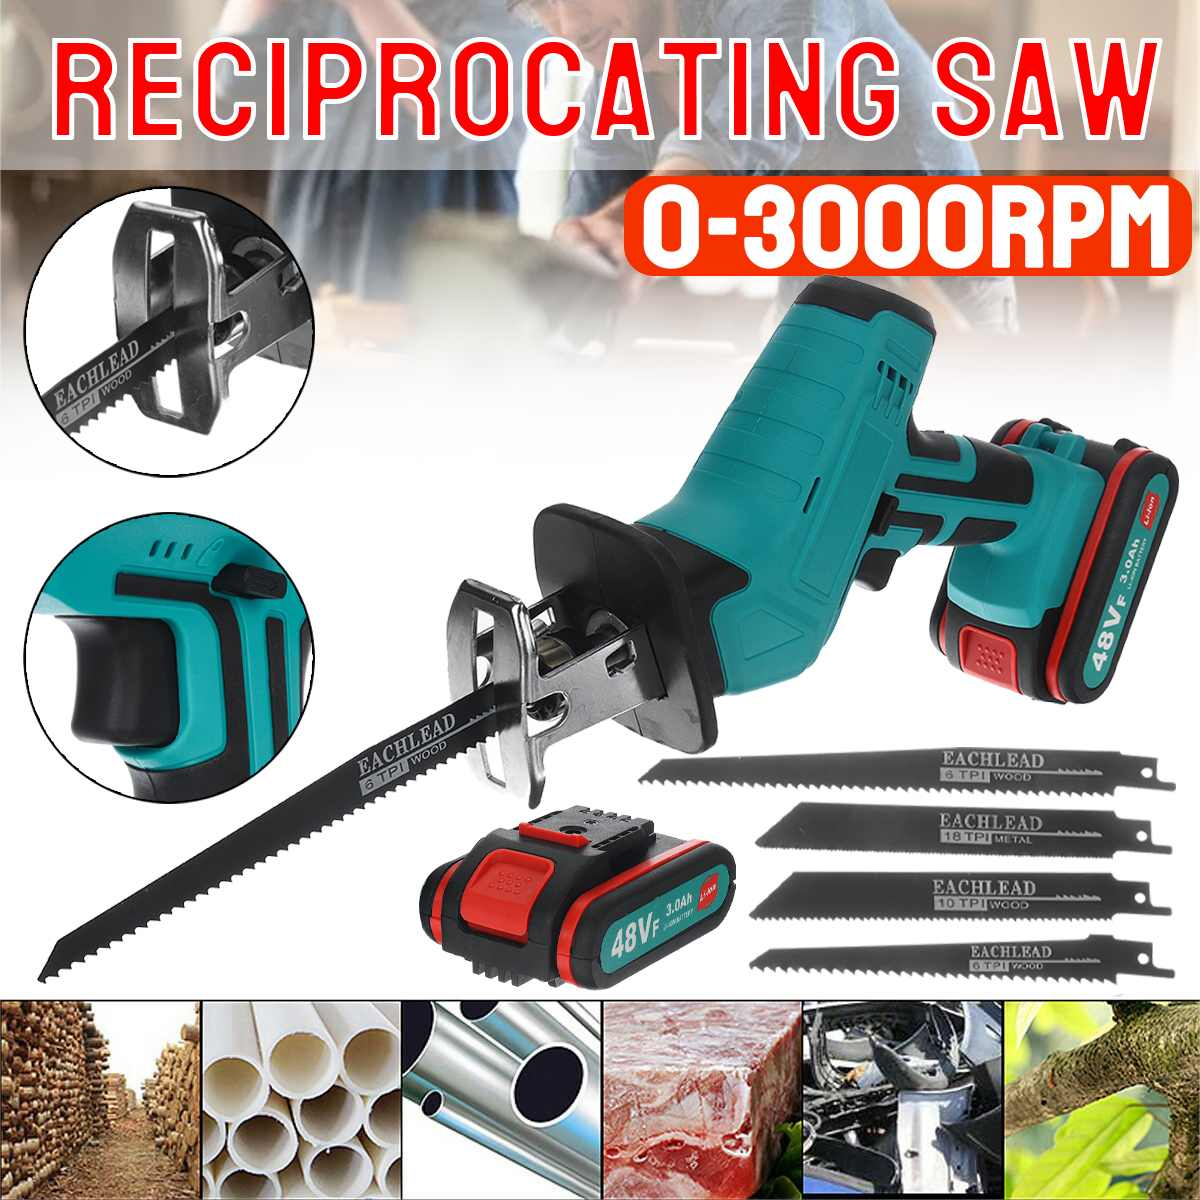 48VF Electric Cordless Reciprocating Saw Mini Saw Chainsaw Running Saw Power Tools for Wood Metal Cutting   2 Battery 4 Blades